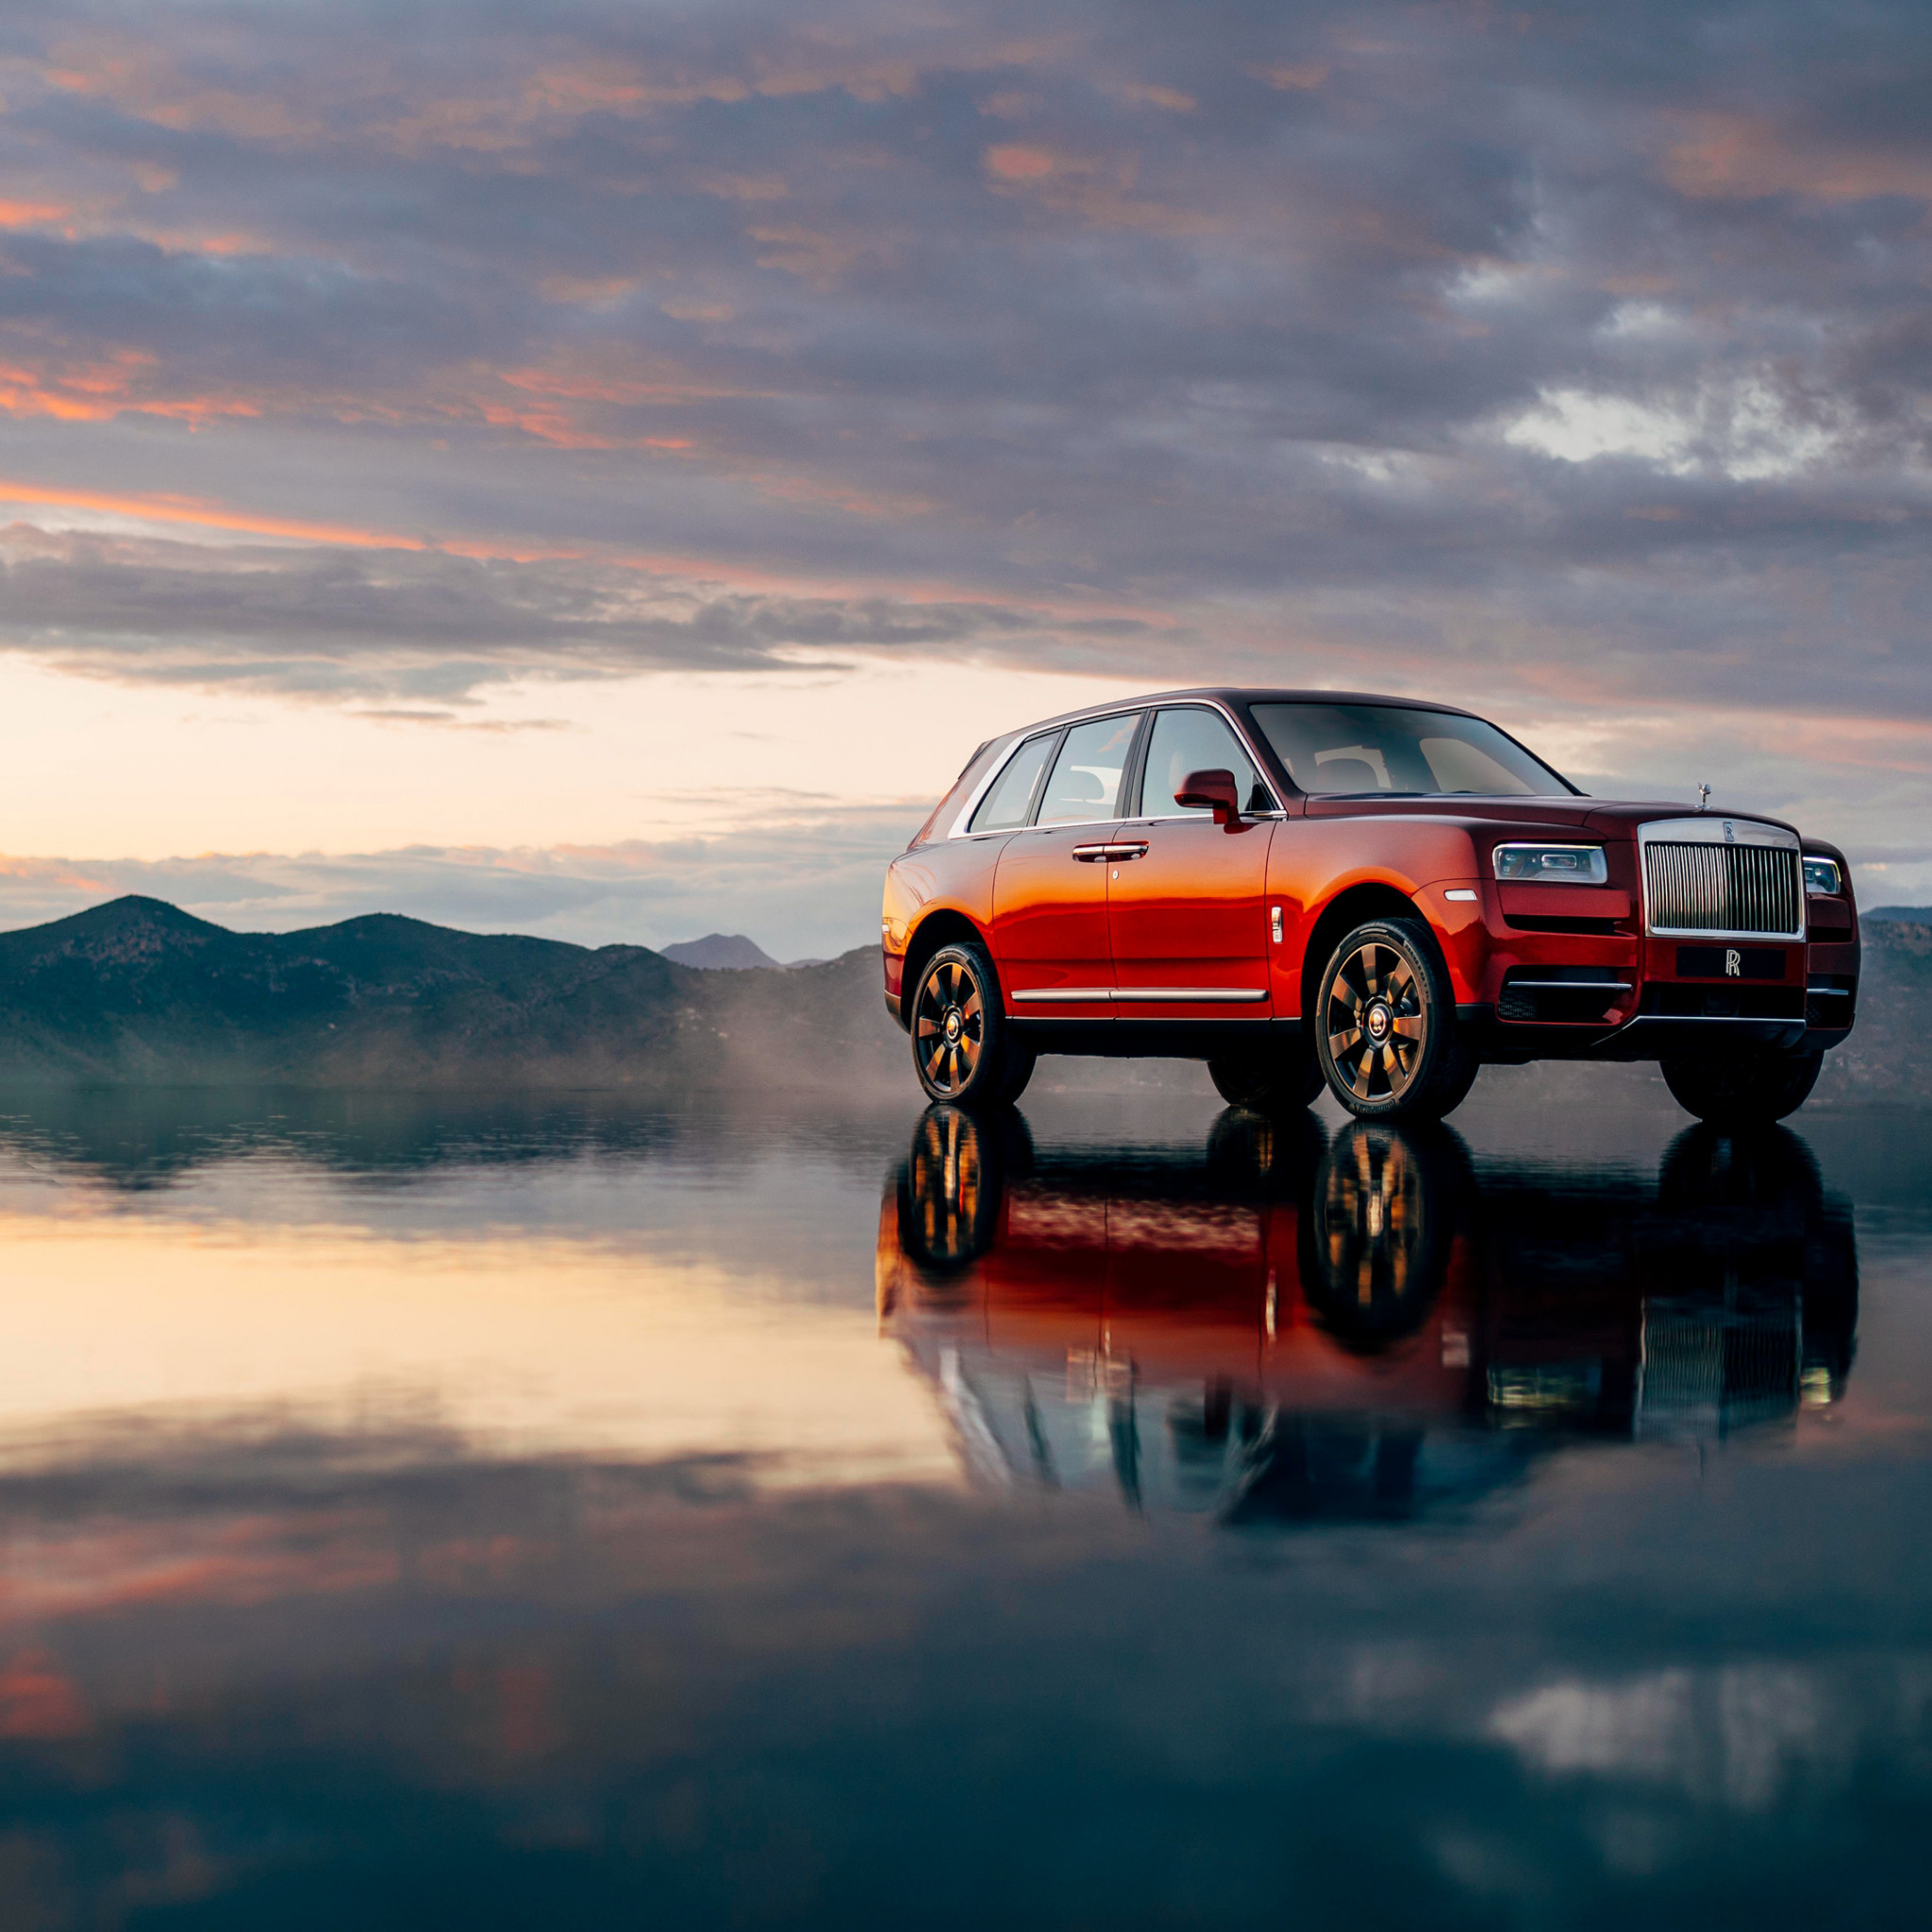 Rolls Royce Cullinan | 2048x2048 wallpaper